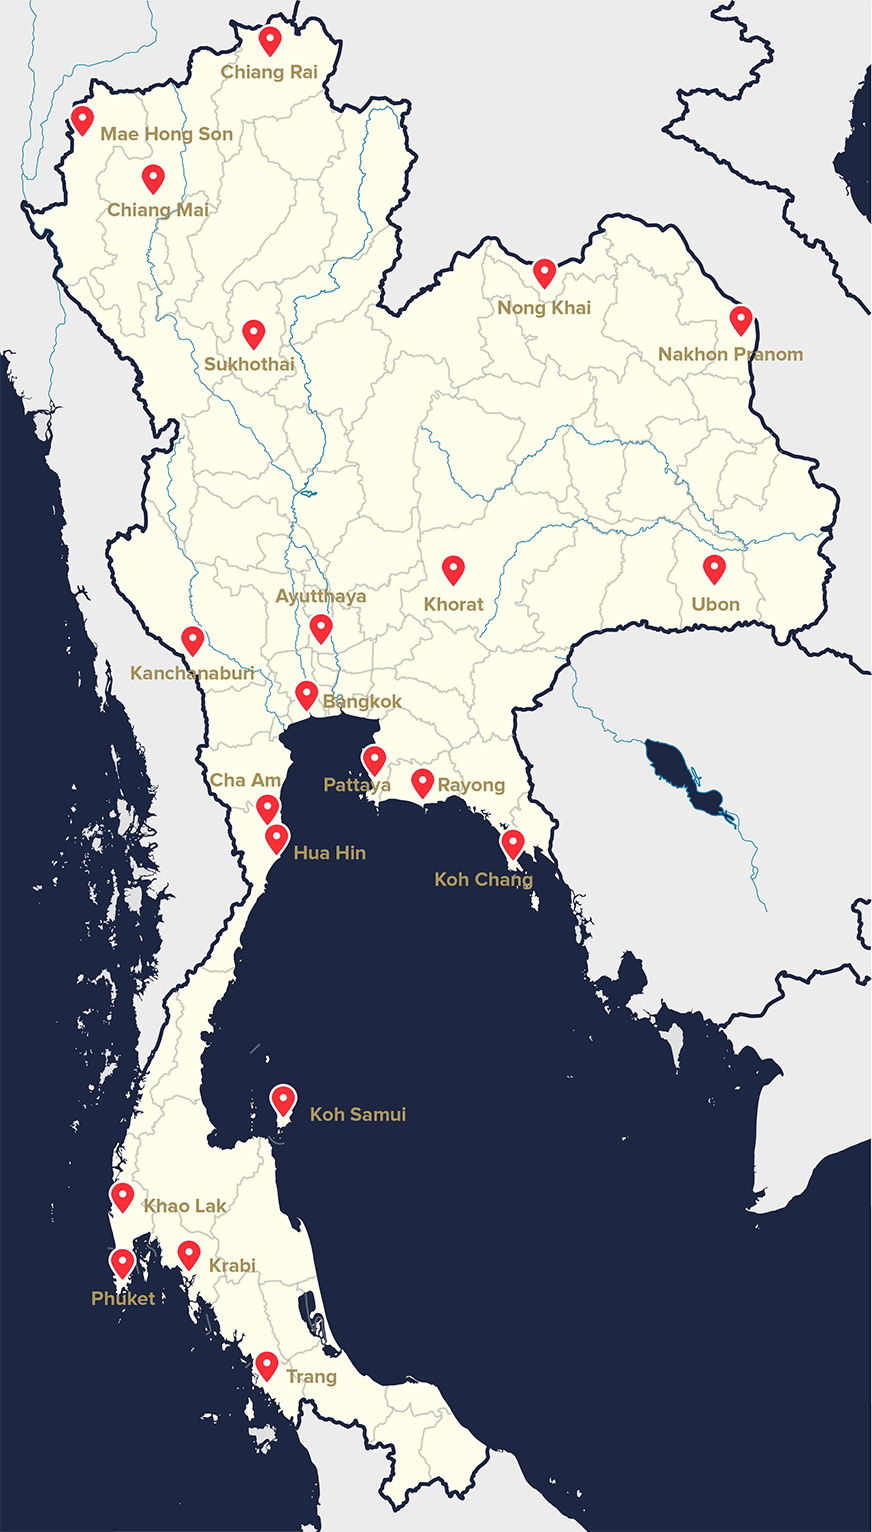 Thailand Map with major locations